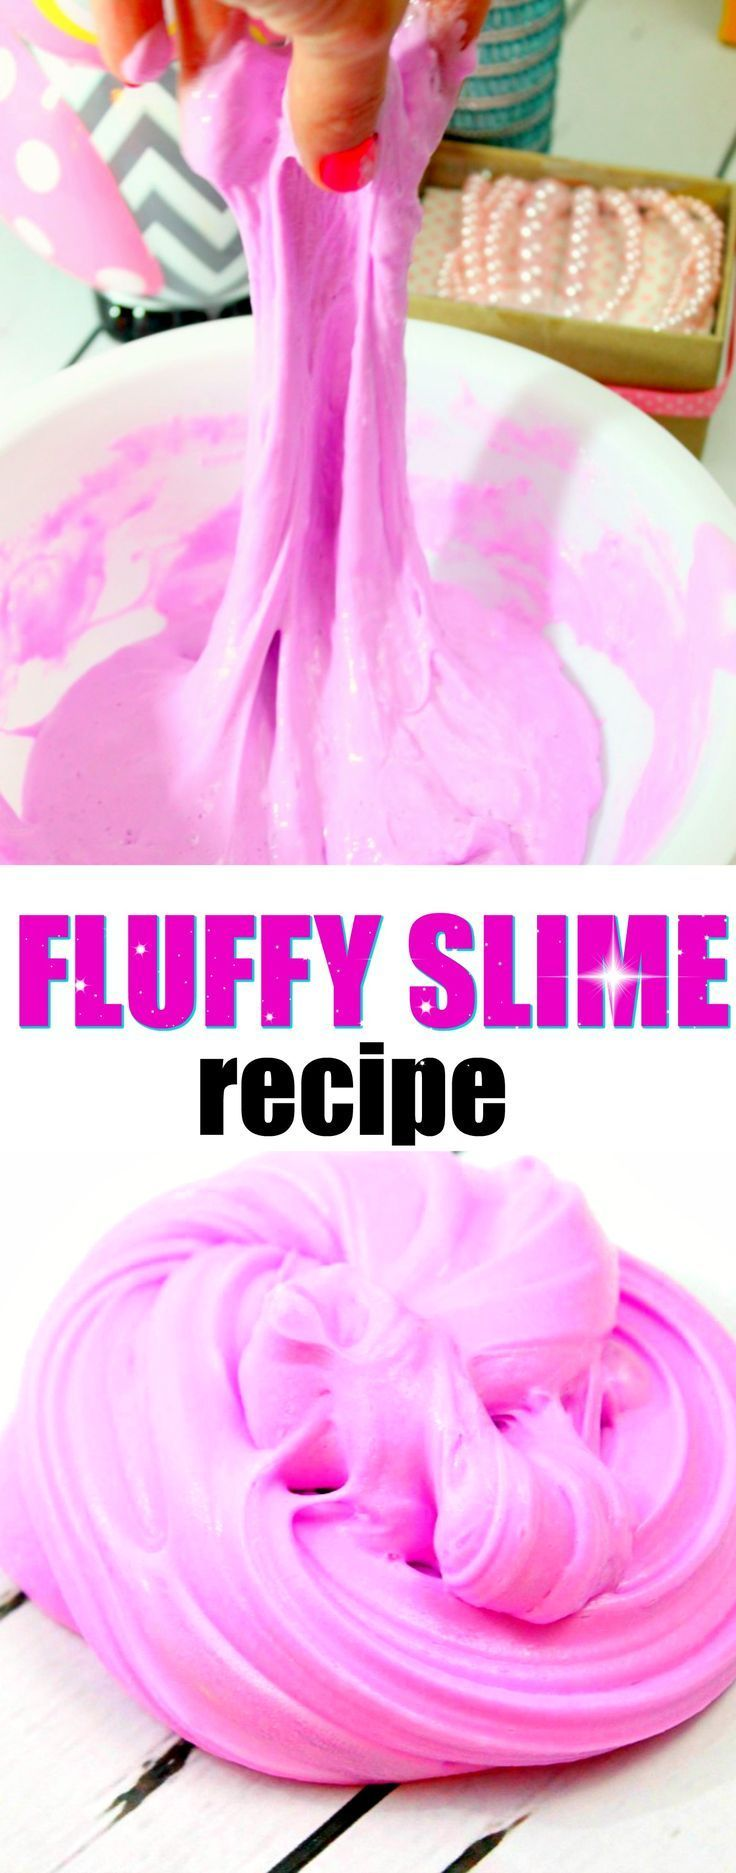 How to make fluffy slime recipe slime stress relief and sensory play slime make fluffy slime pink slime that is super stretchy step by step instructions with pictures on how to make slime slime fluffyslime pinkslime ccuart Image collections